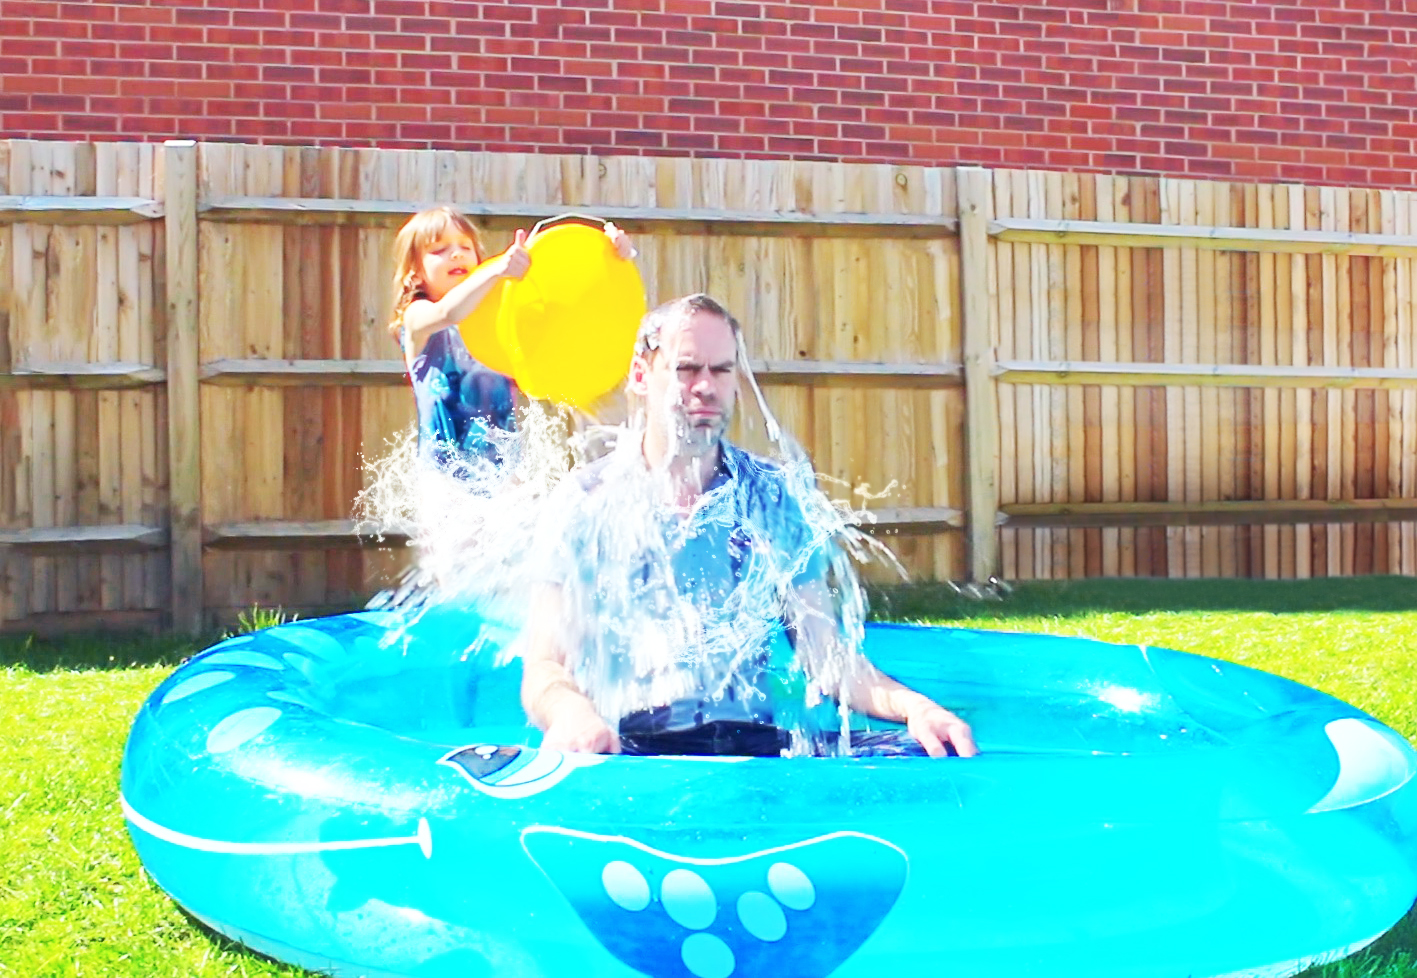 My troubled history with paddling pools